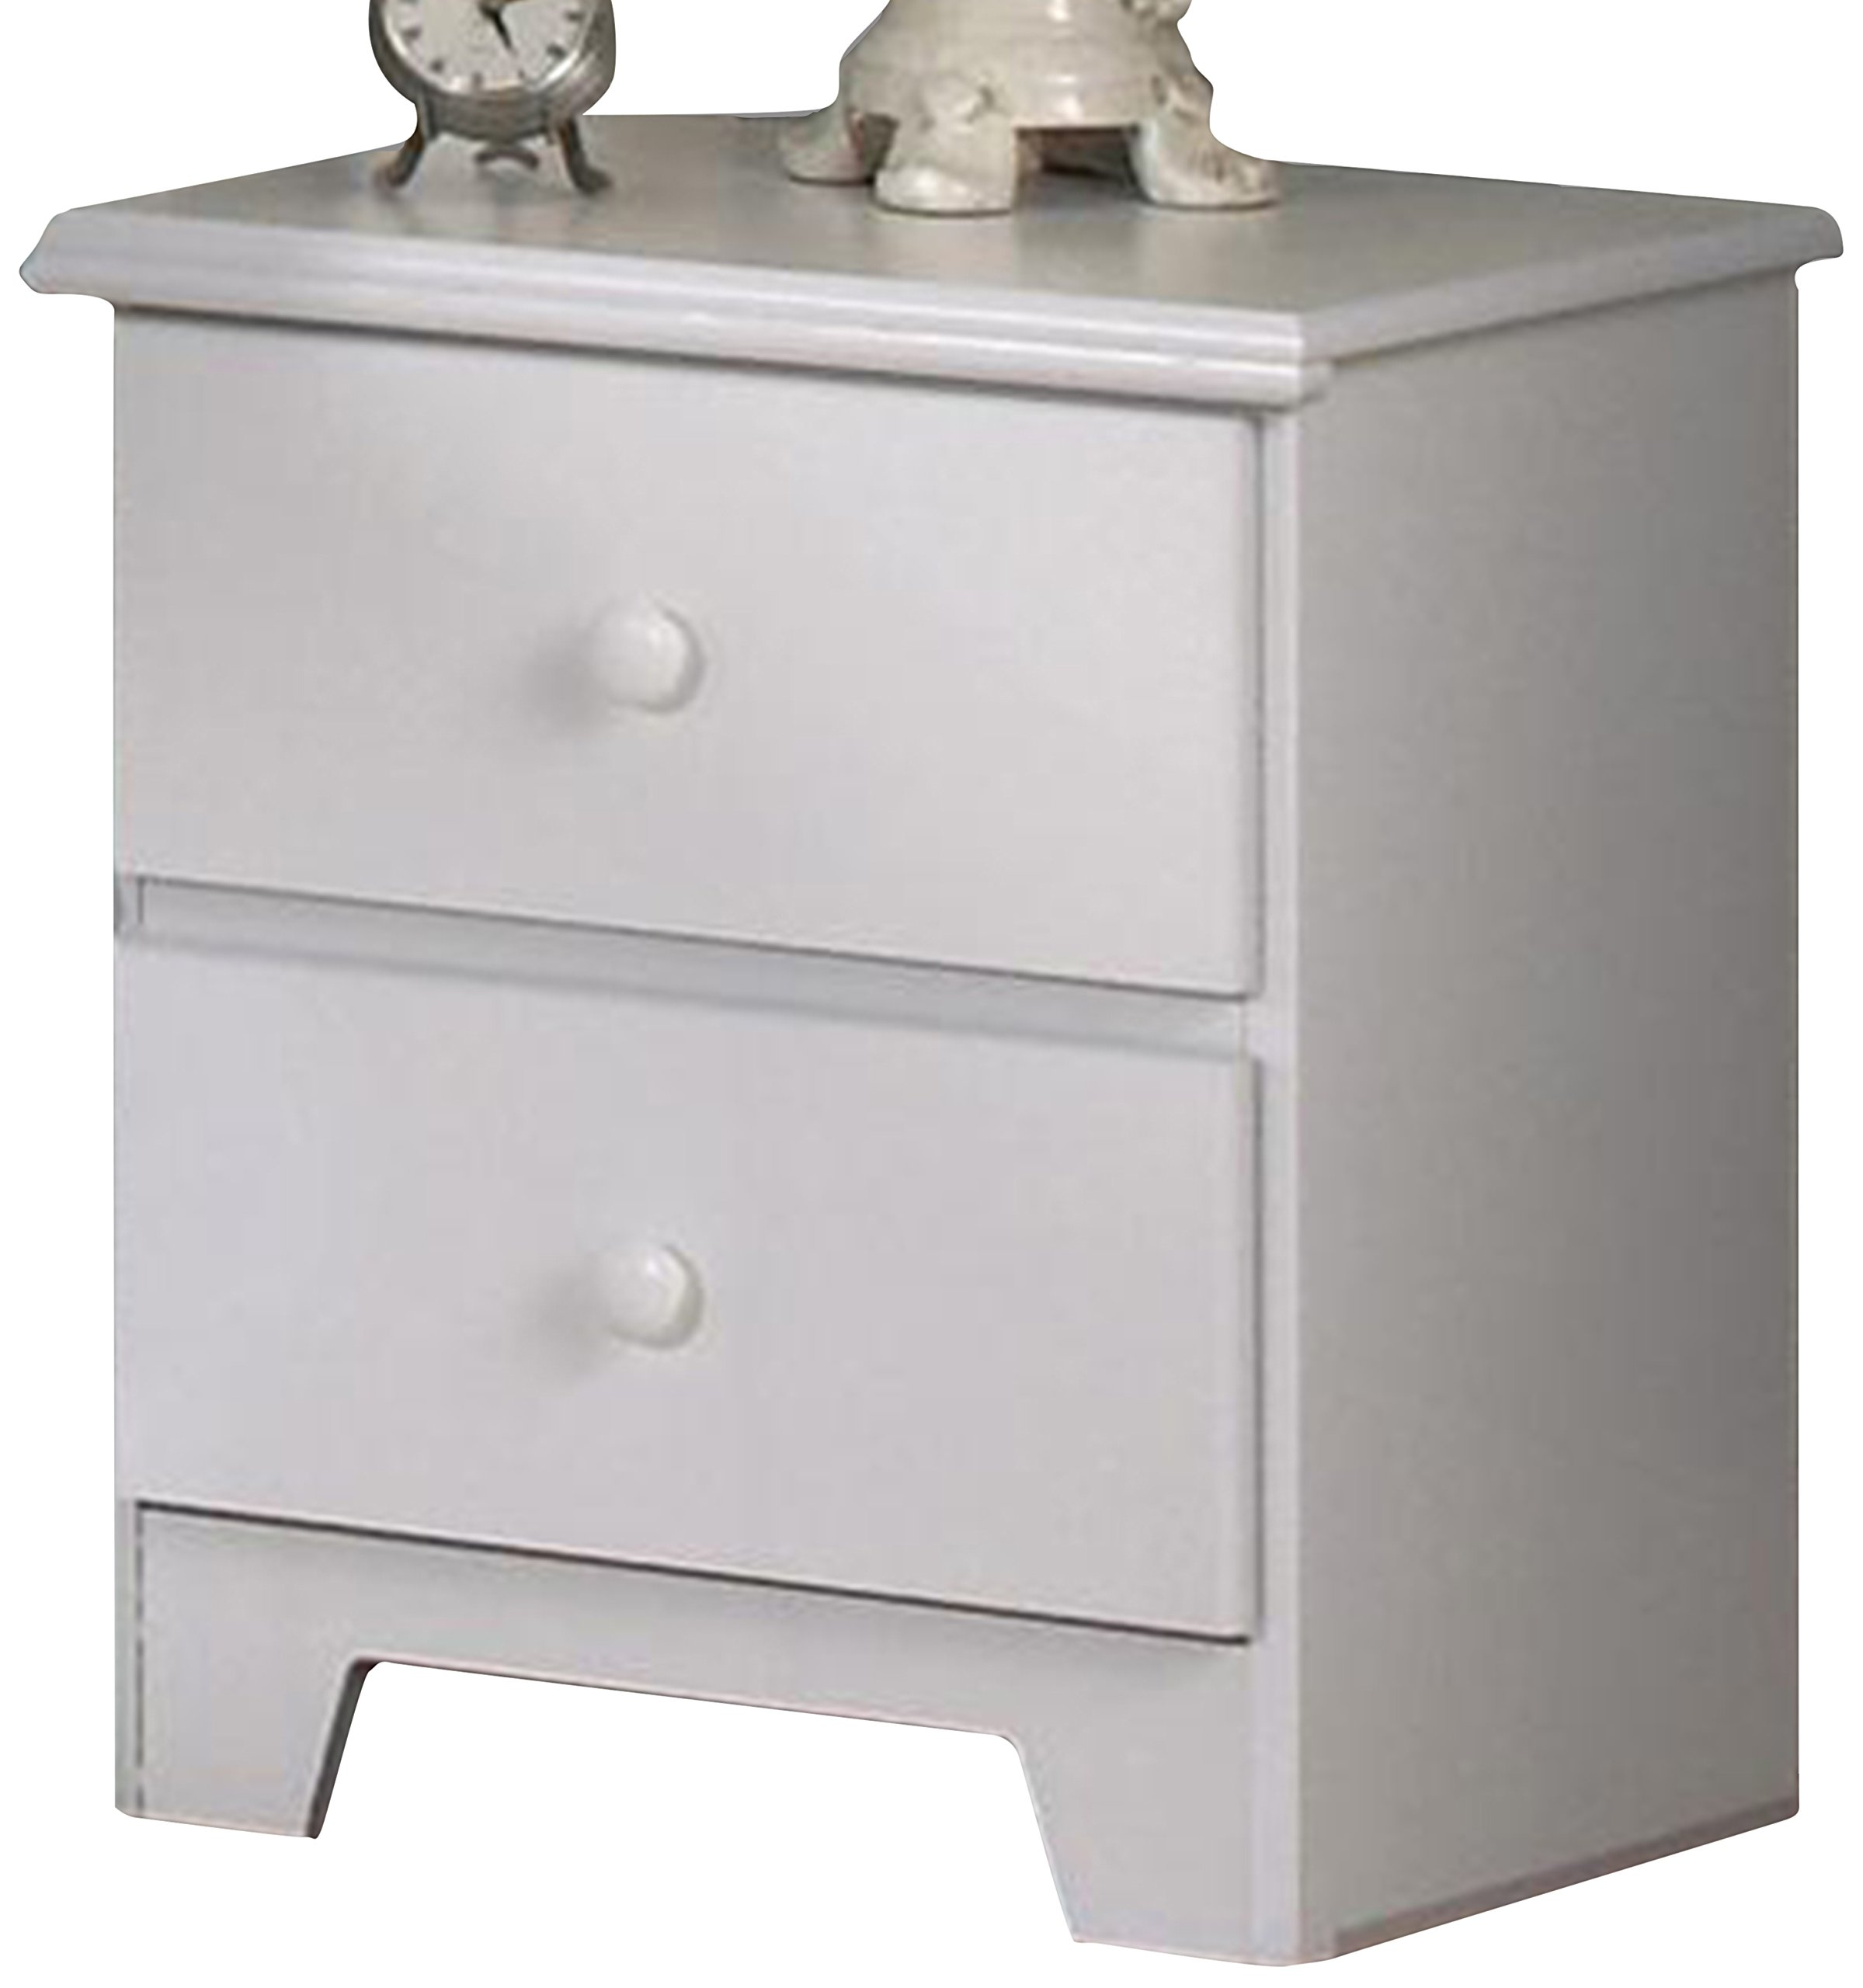 Lang Furniture Shaker 2-Drawer Night Stand with Roller Glides, 16 by 20 by 23-Inch, White - Deluxe metal roller glides with safety stops that will ensure continuous support and durability for years to come Fully assembled with no set up required It is made in USA - bedroom-furniture, nightstands, bedroom - 71u33ySd3wL -